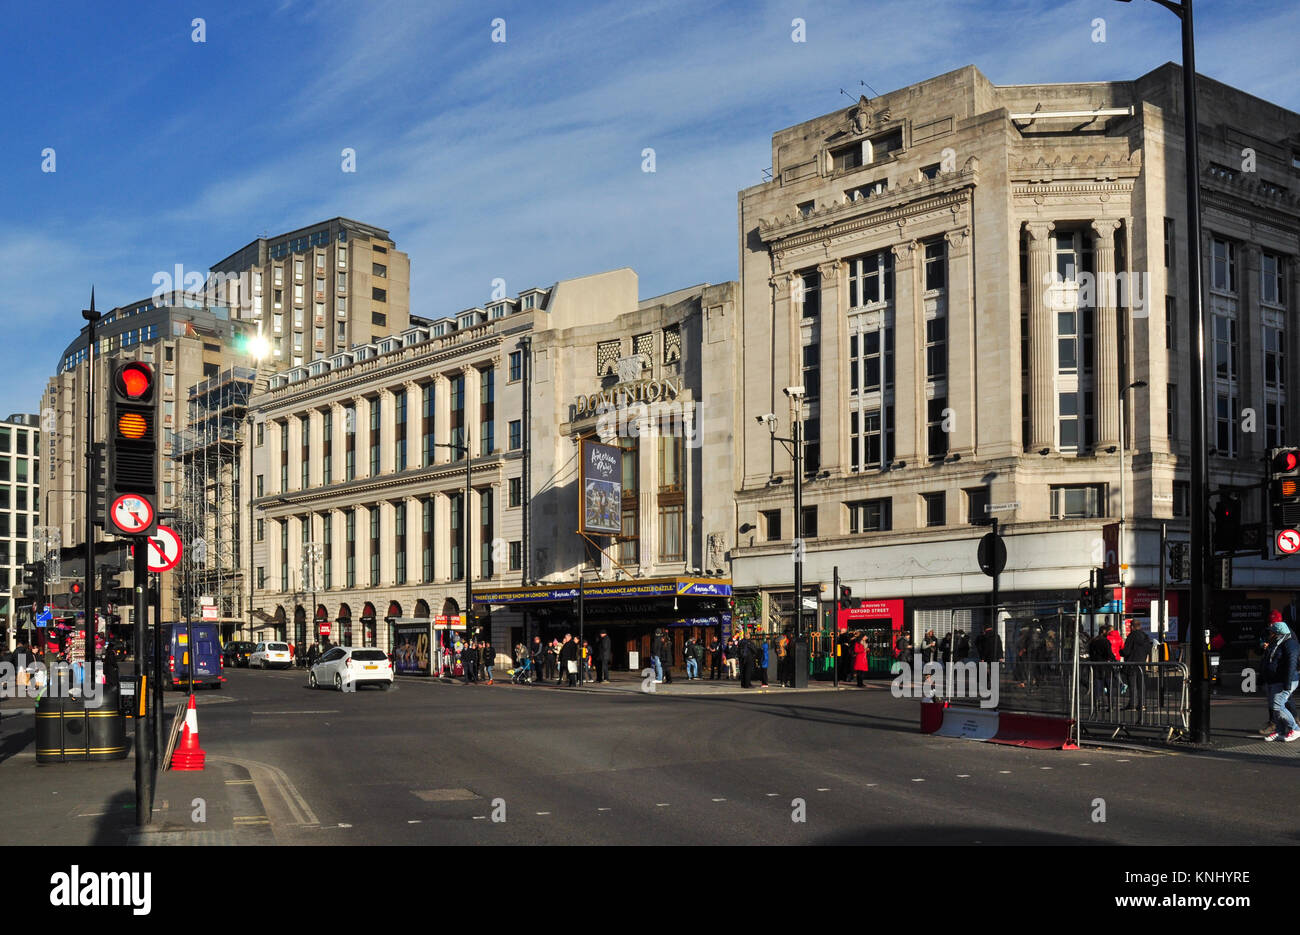 Tottenham Court Road corner with Oxford Street, London, England, UK - Stock Image